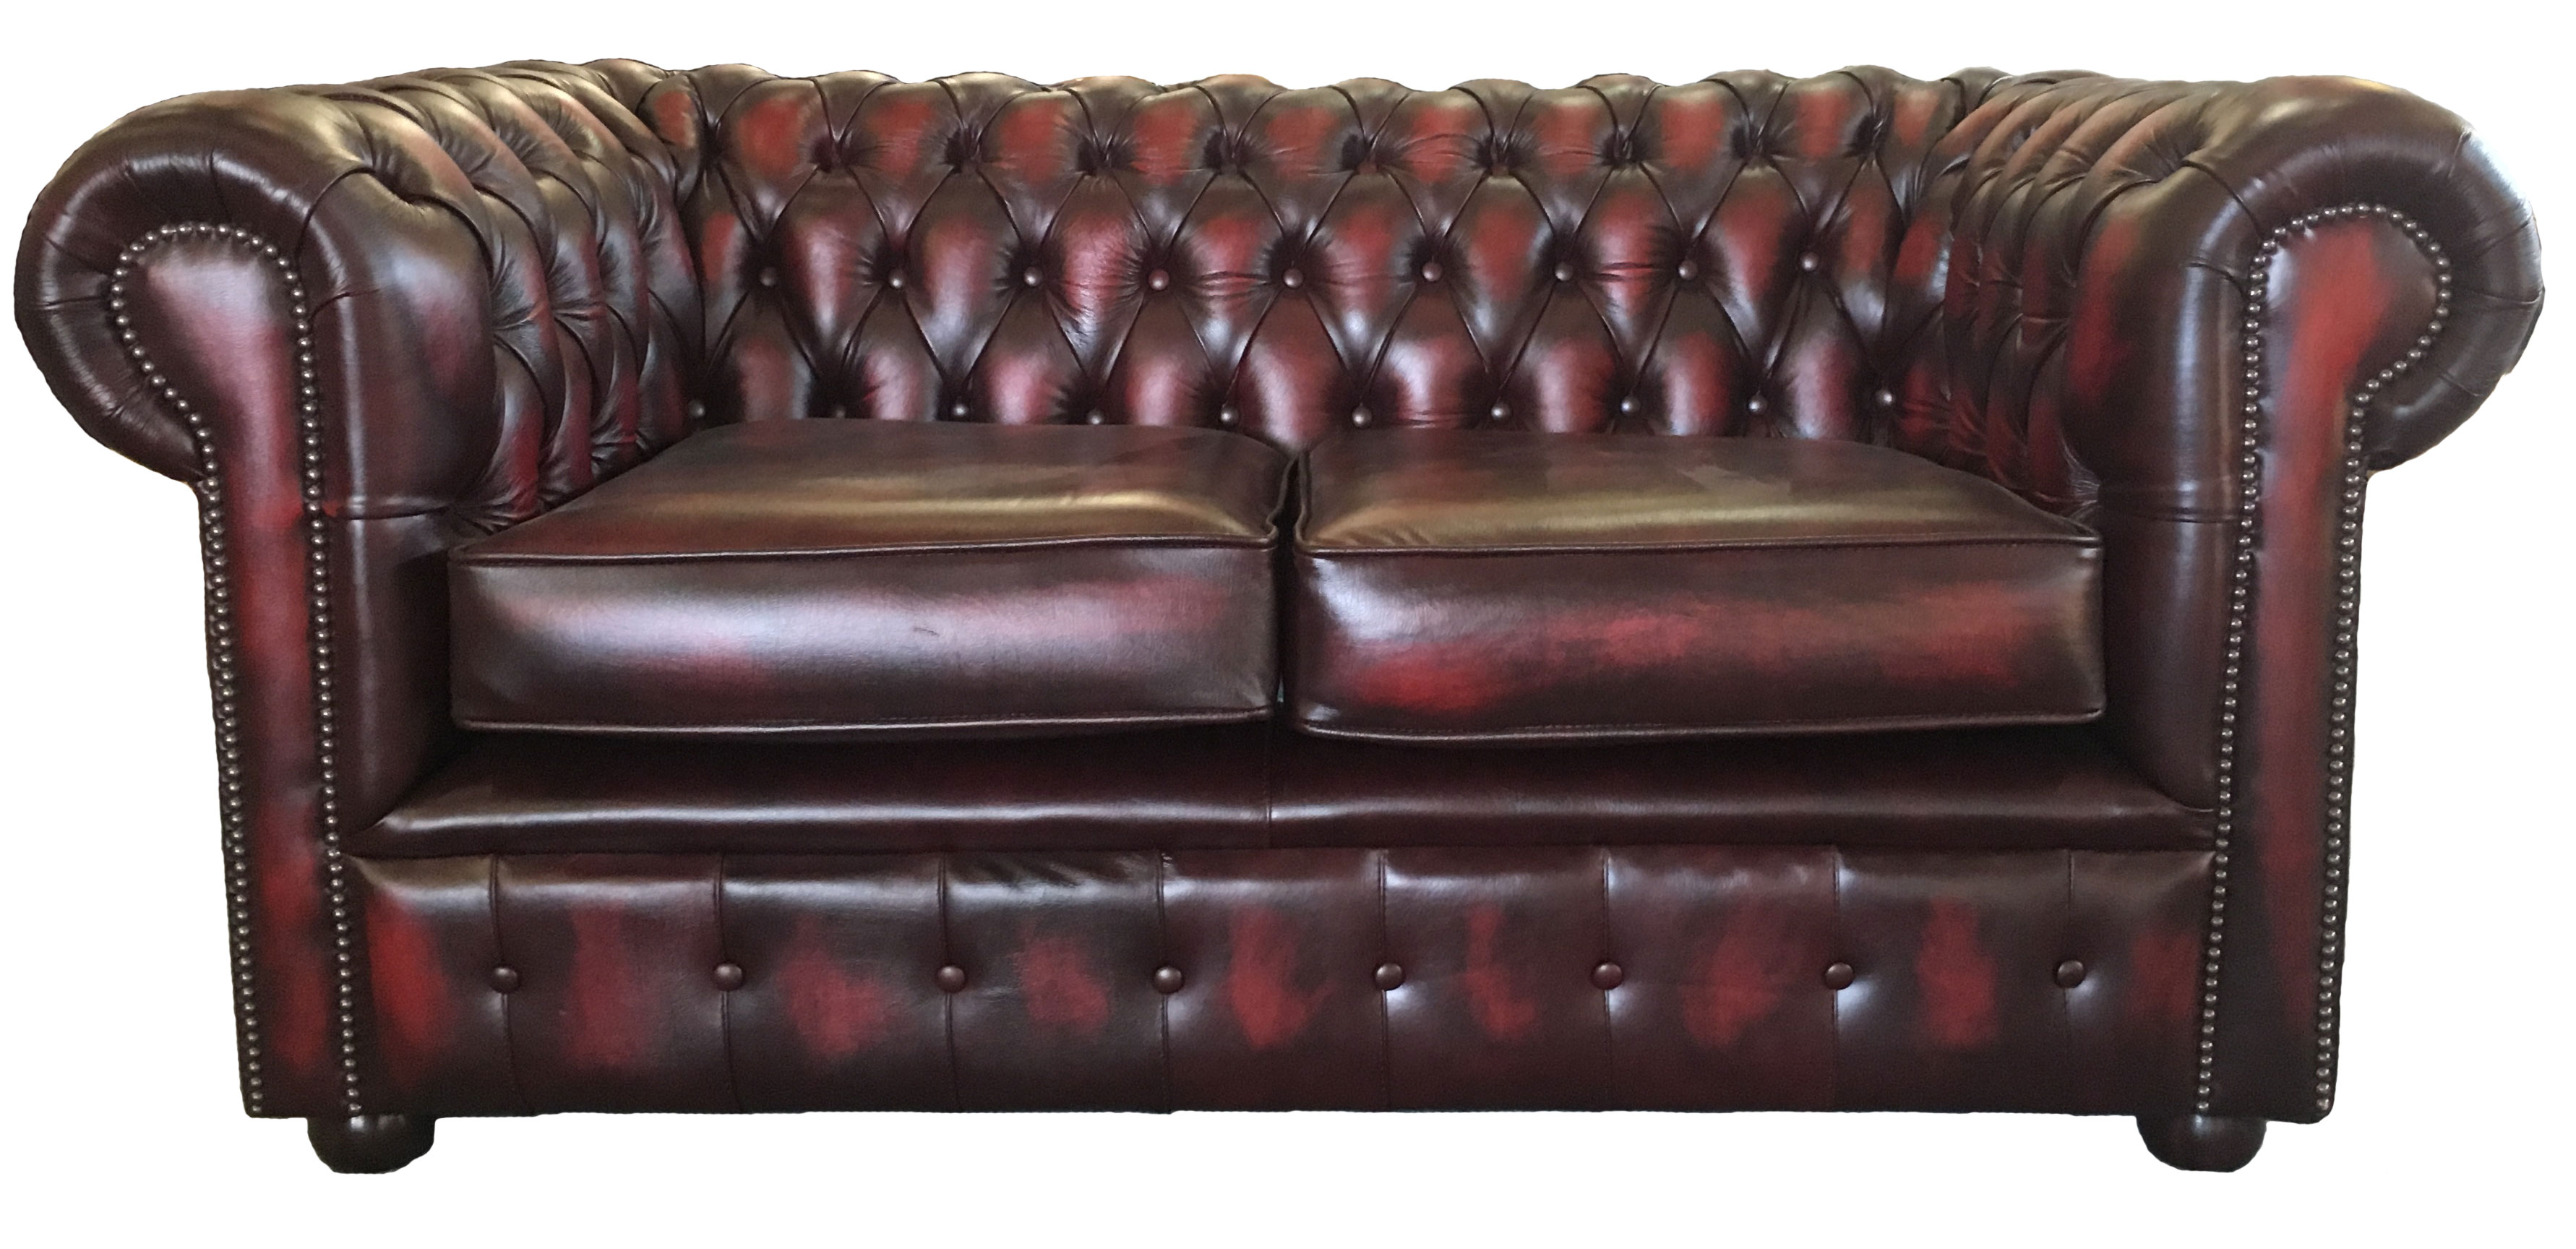 Oxblood Red Chesterfield London 100% Genuine Leather Two Seater Sofa ...